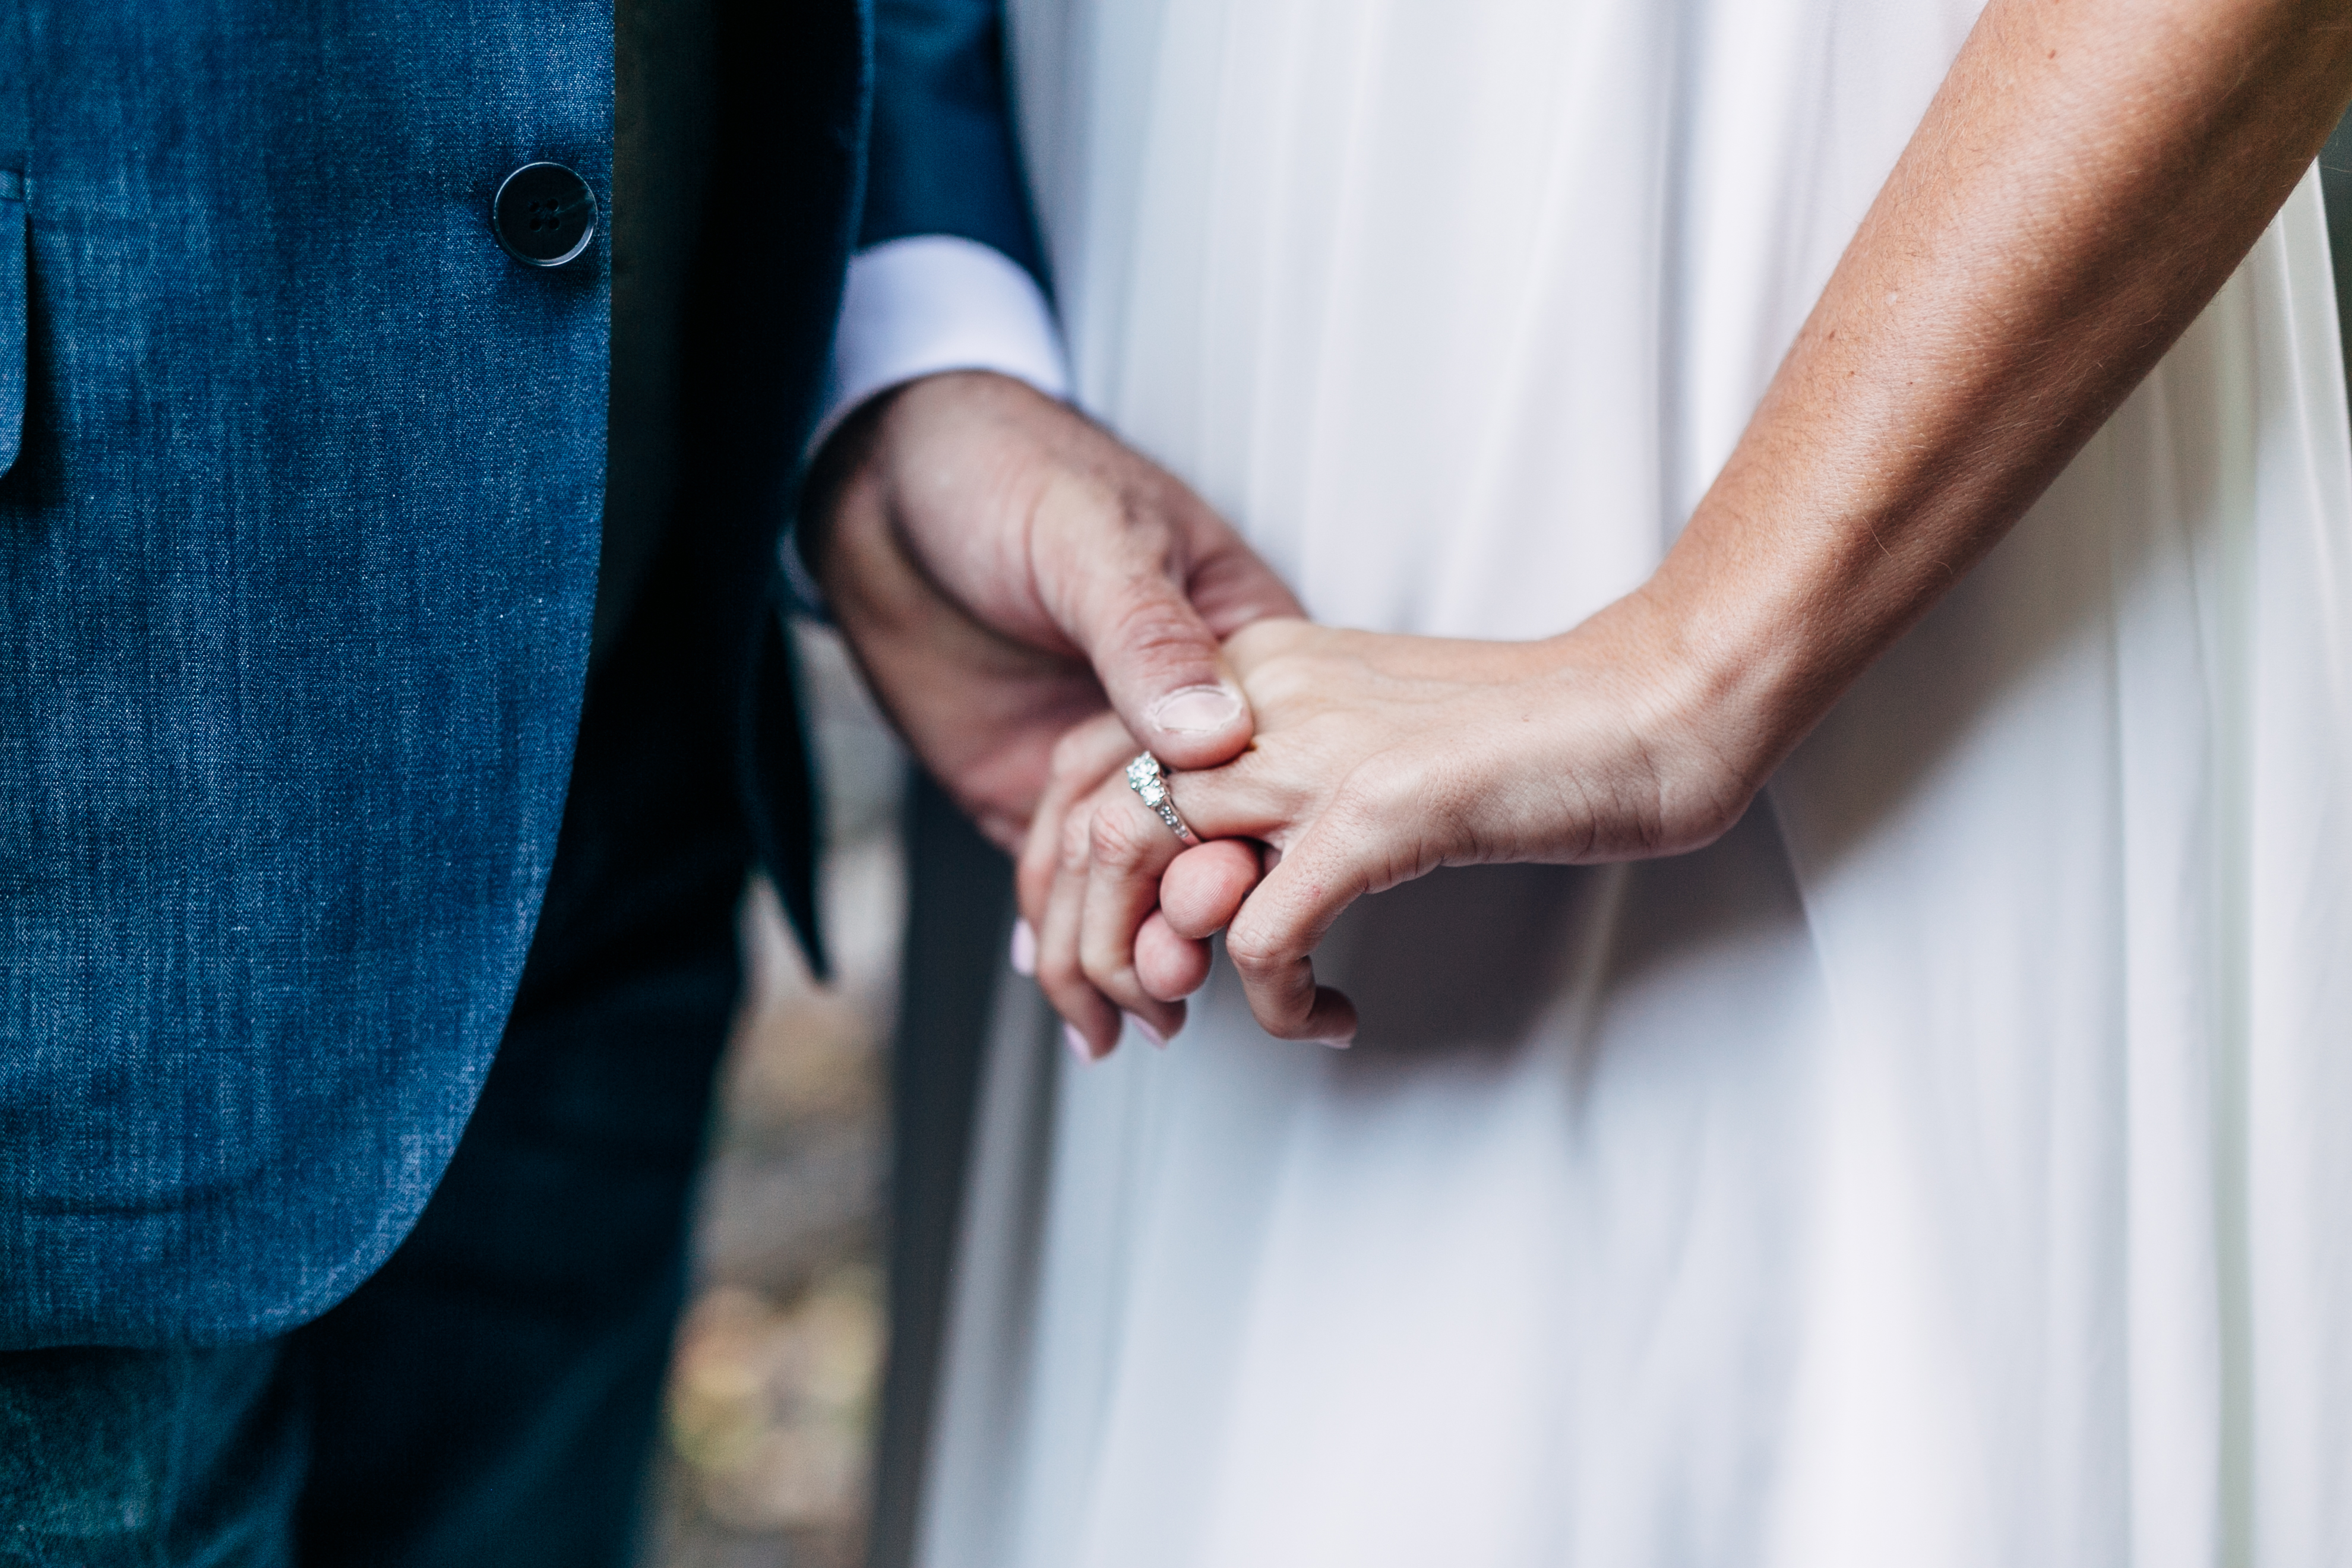 NY Challenging Court Ruling Allowing Weddings to Have More Than 50 People